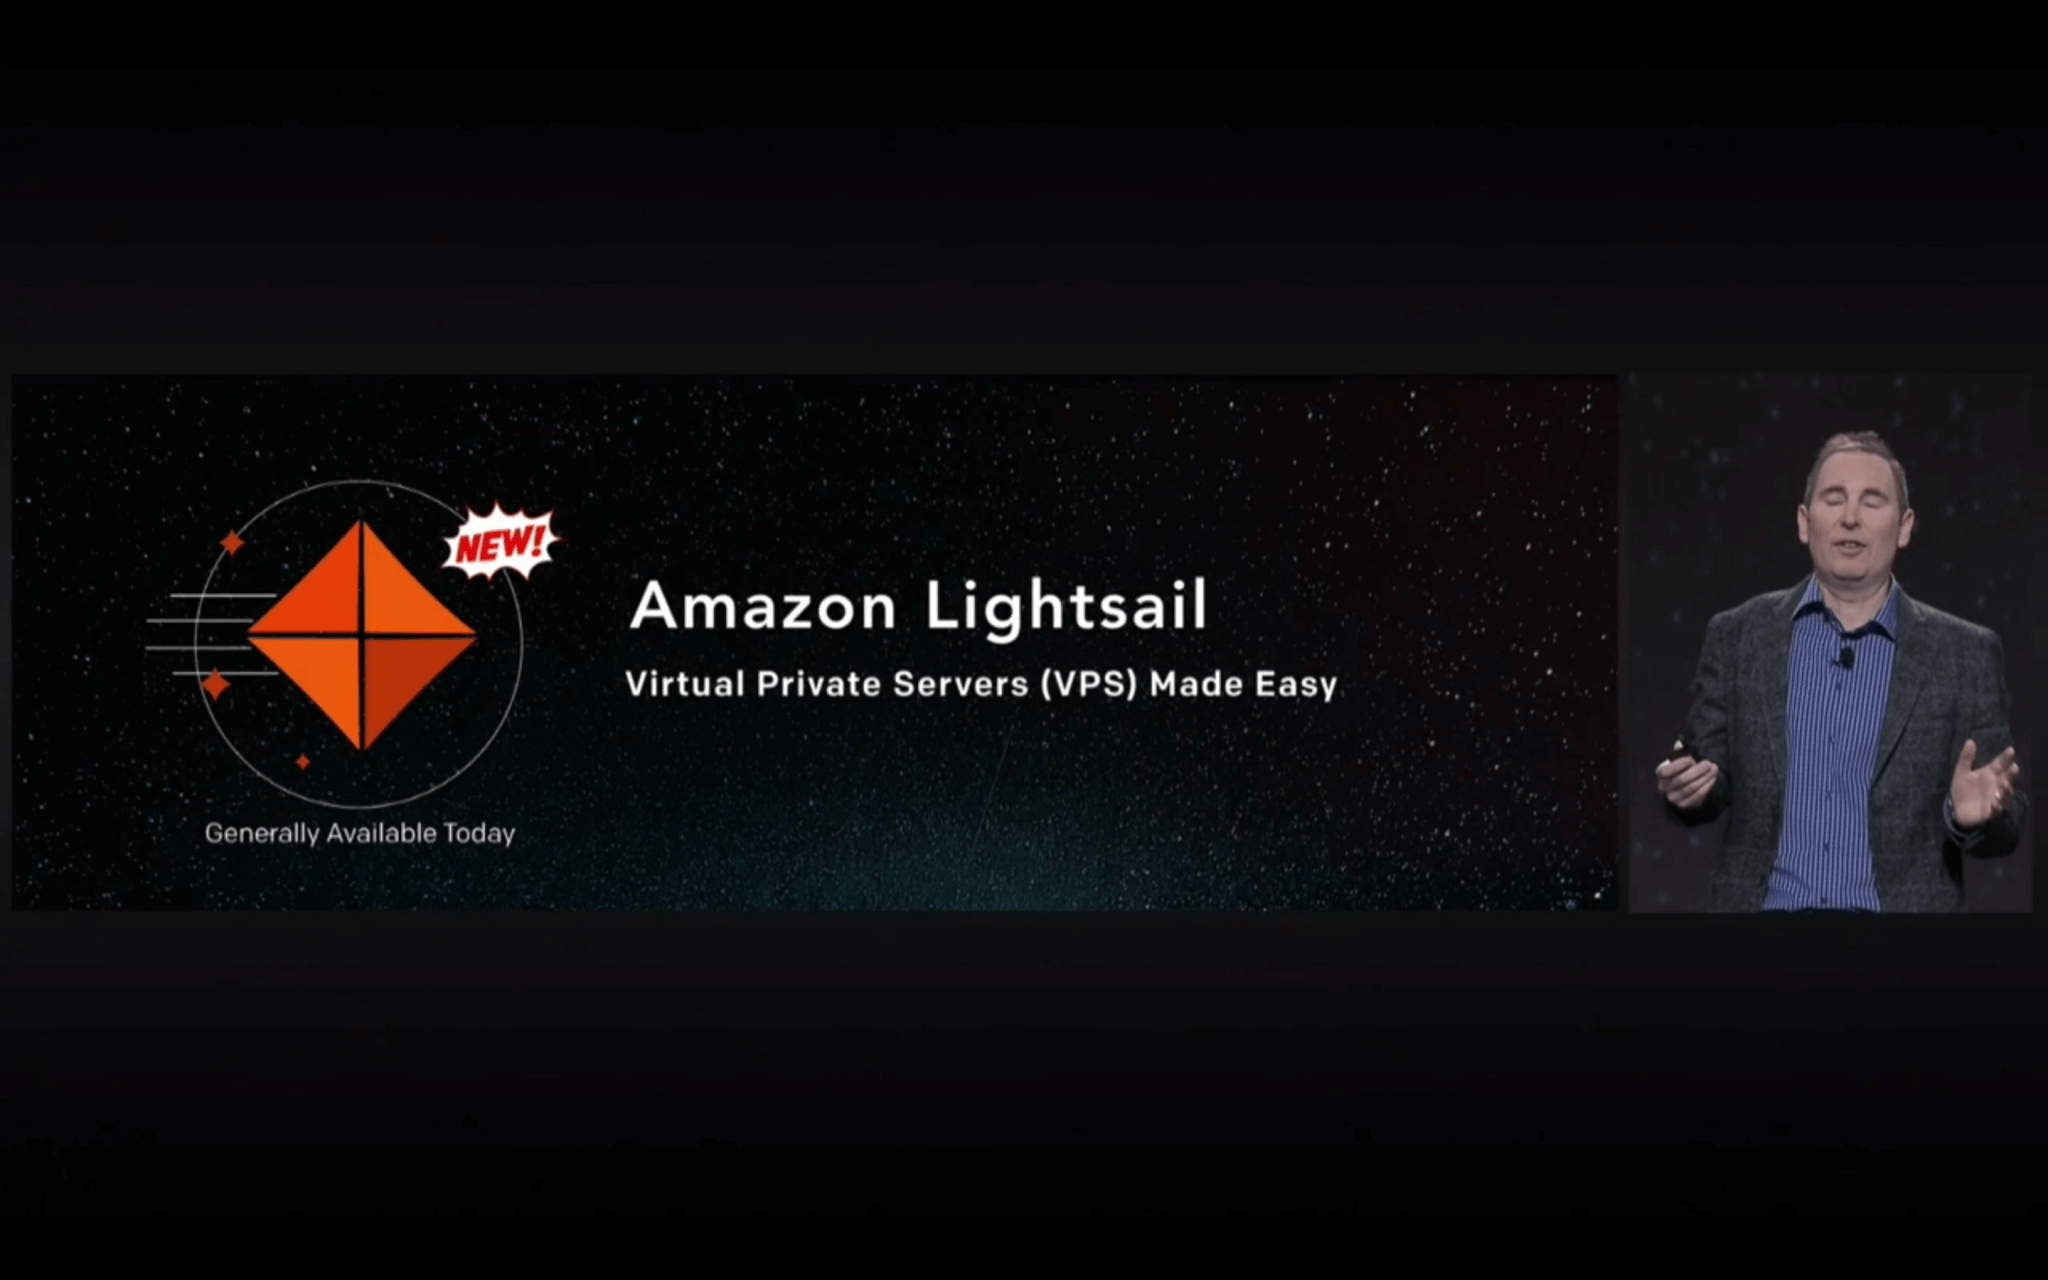 Amazon Lightsail.